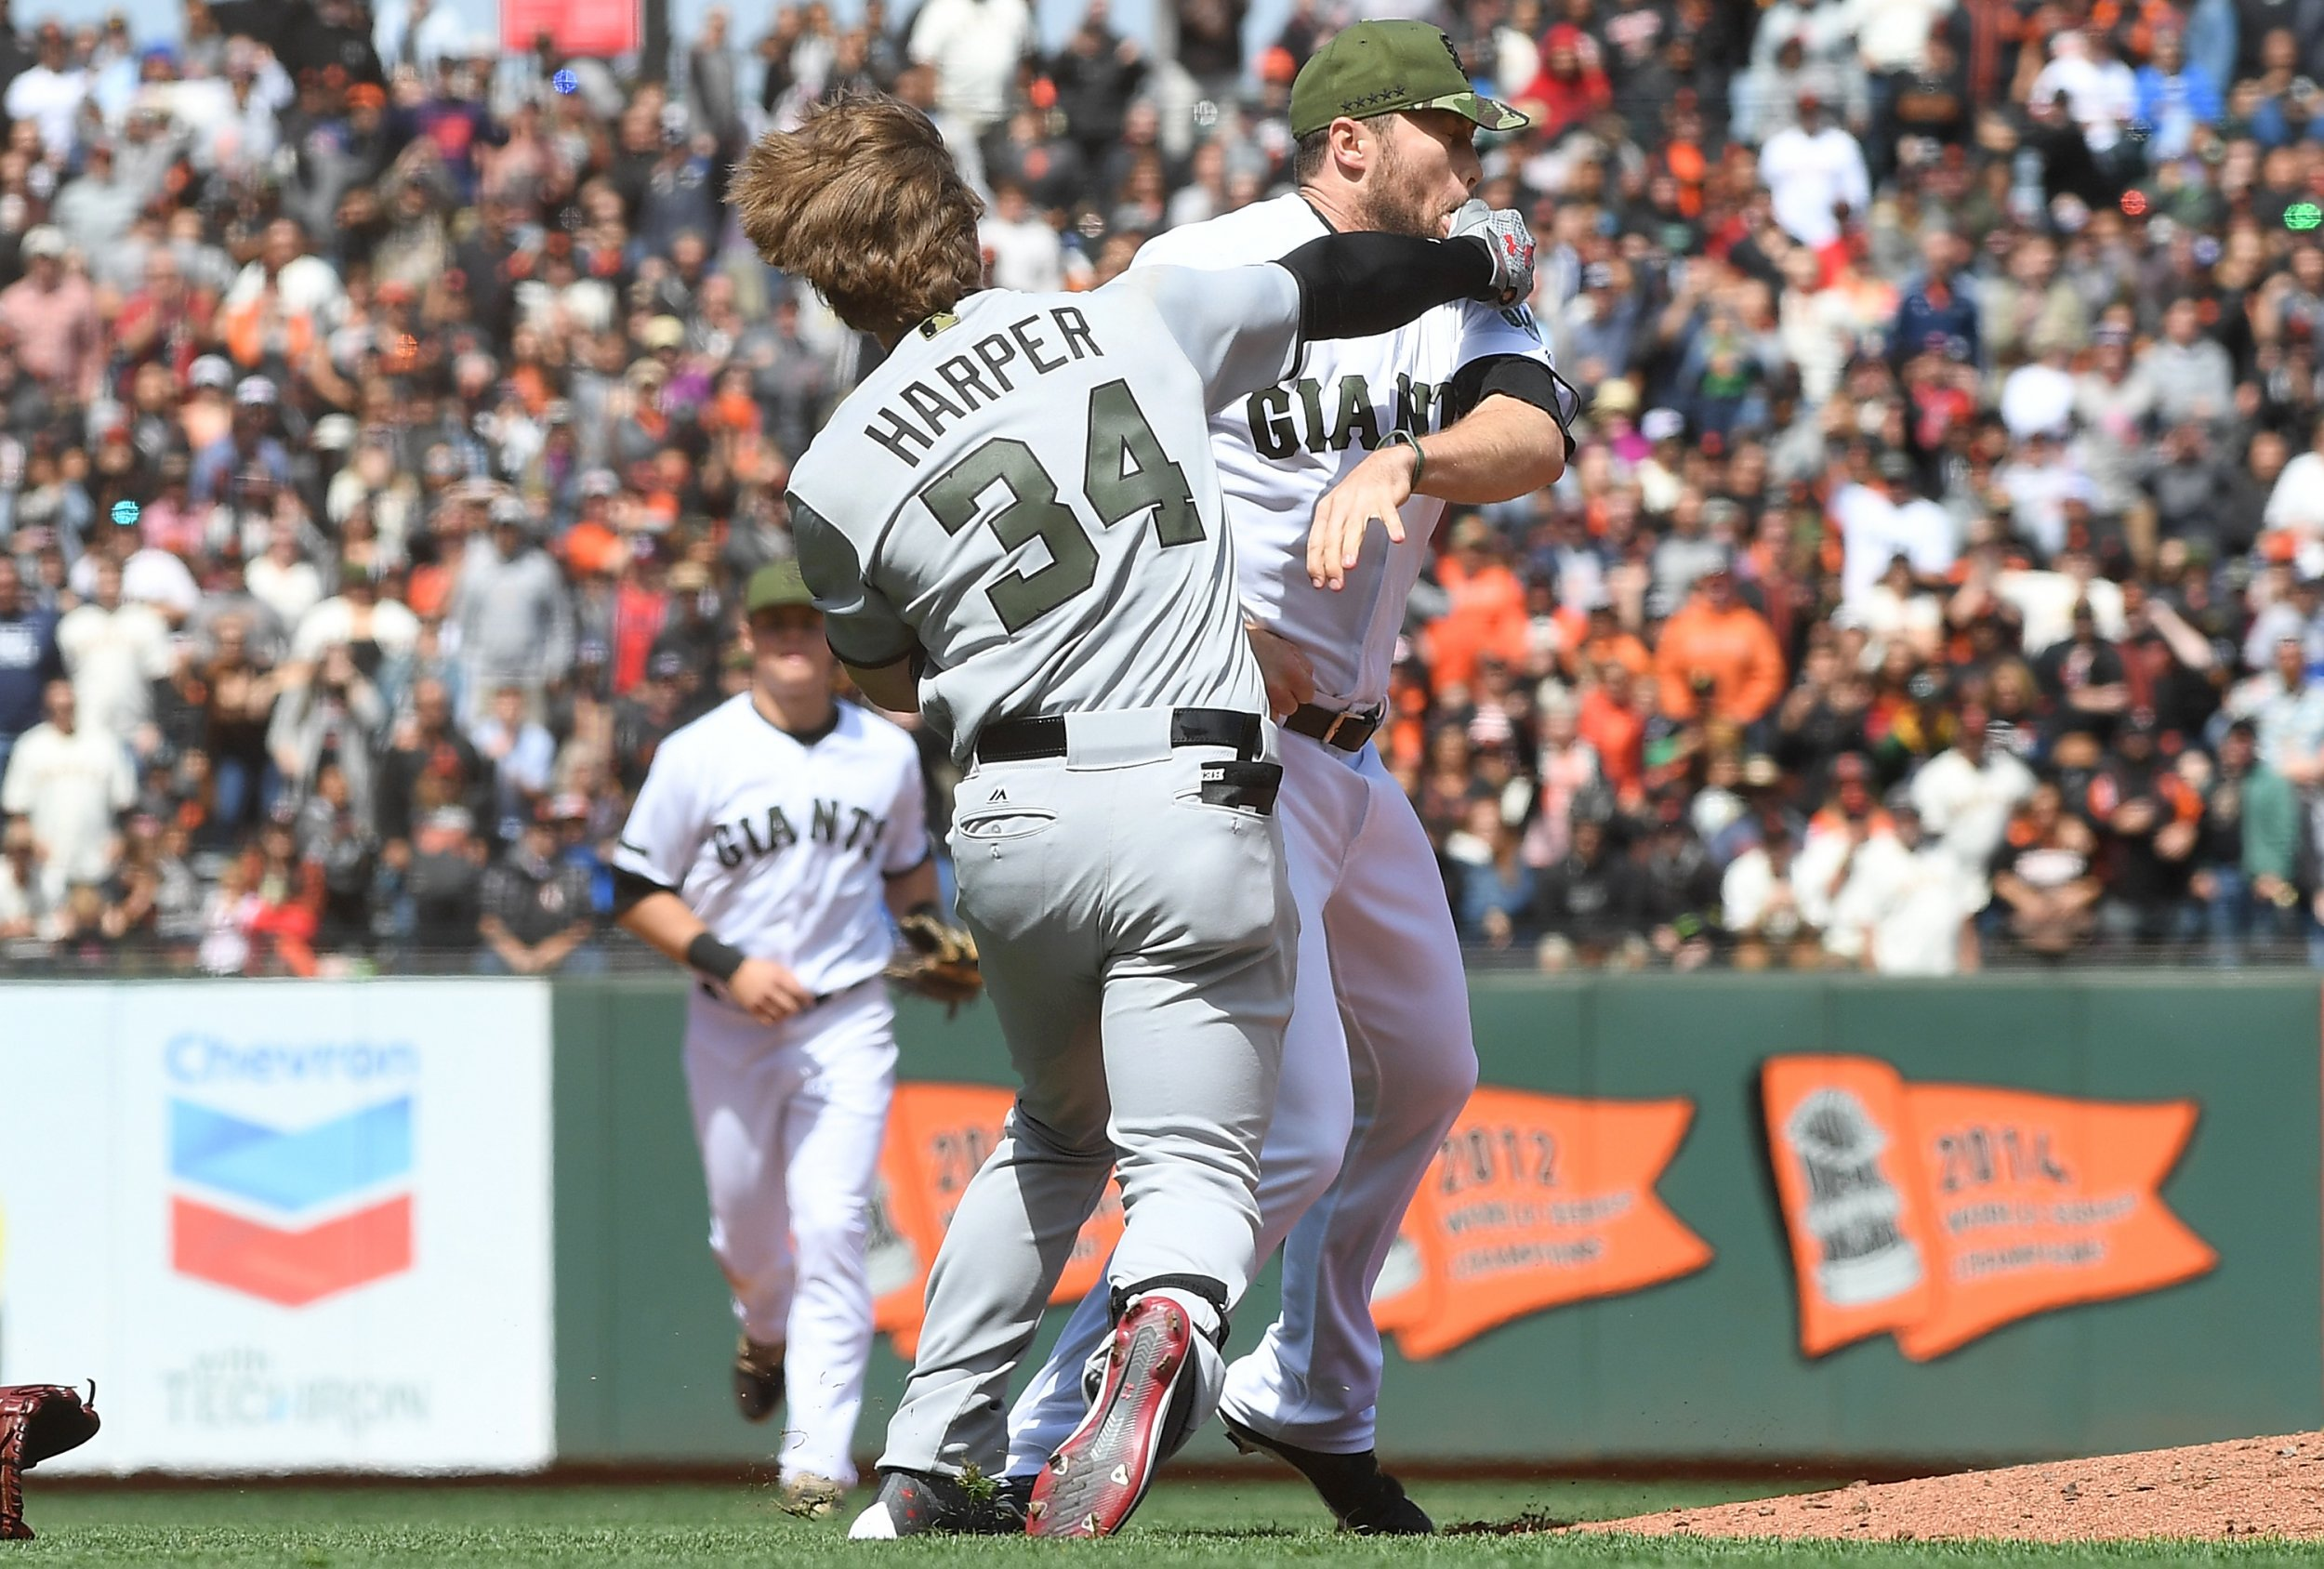 Bryce Harper of the Washington Nationals, left, and San Francisco Giants pitcher Hunter Strickland throw punches at AT&T Park, San Francisco, May 29.